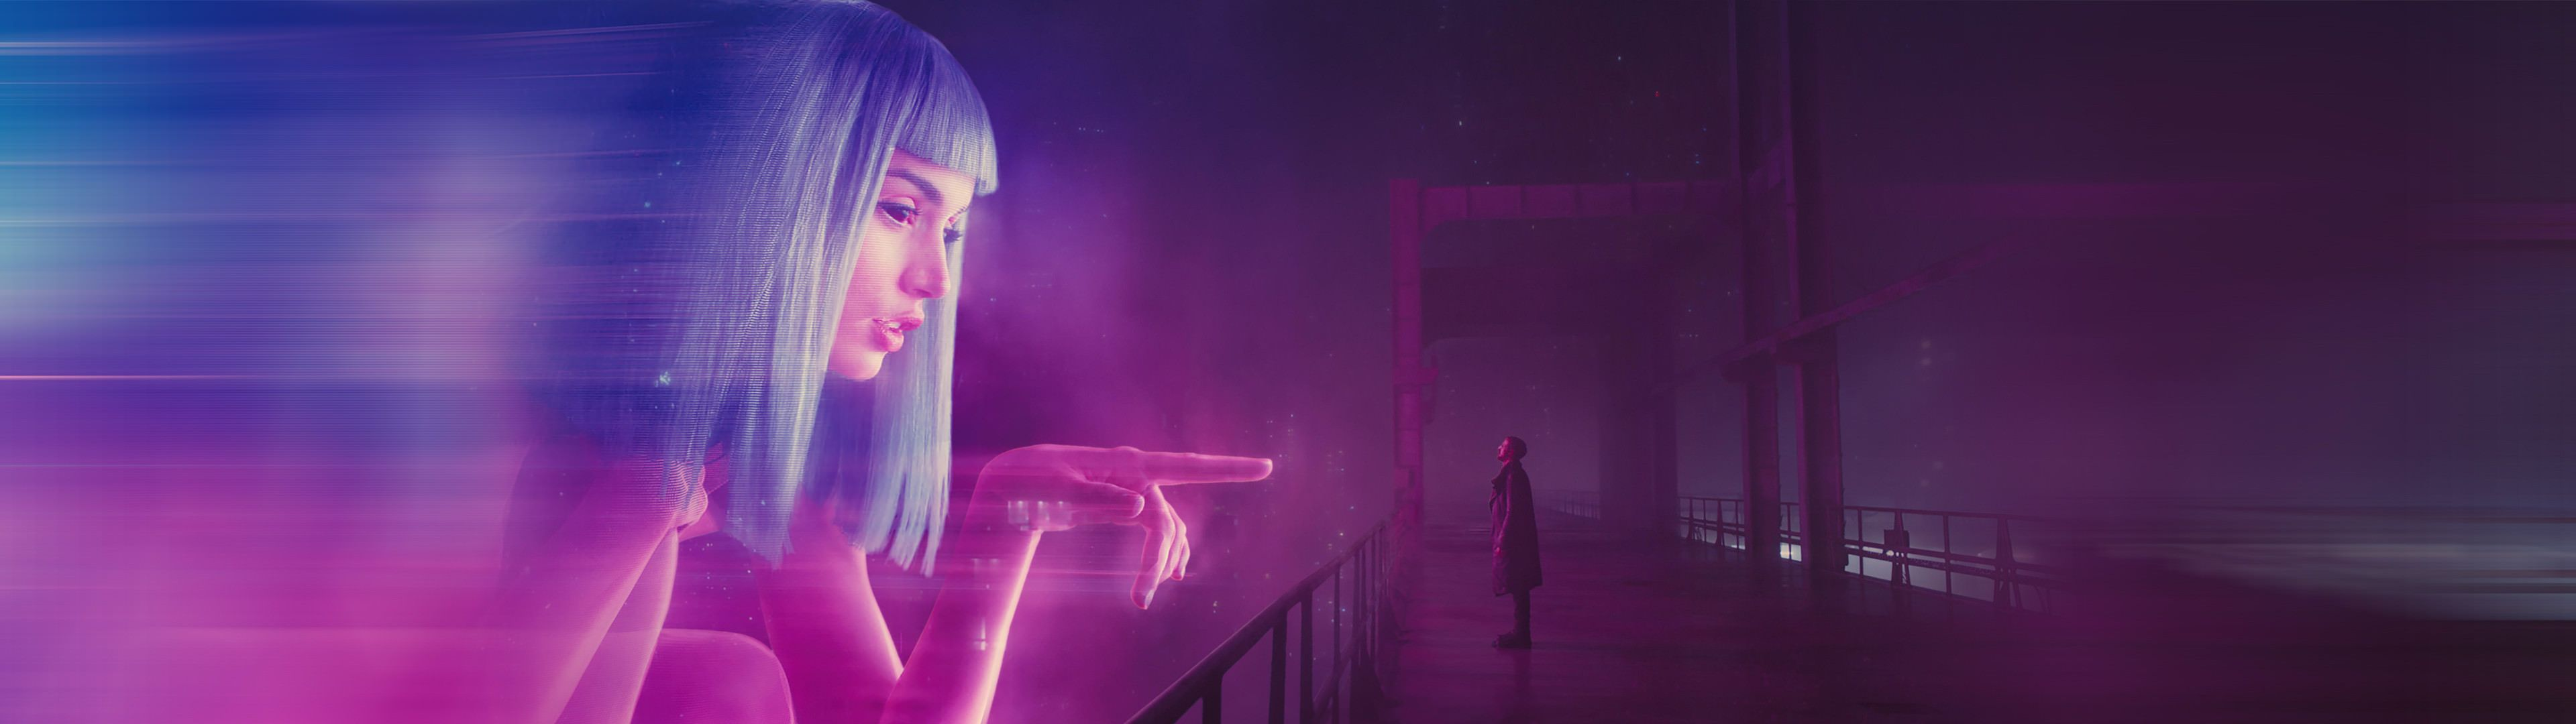 Blade Runner 2049 Ultrawide [3840x1080] Psychedelic